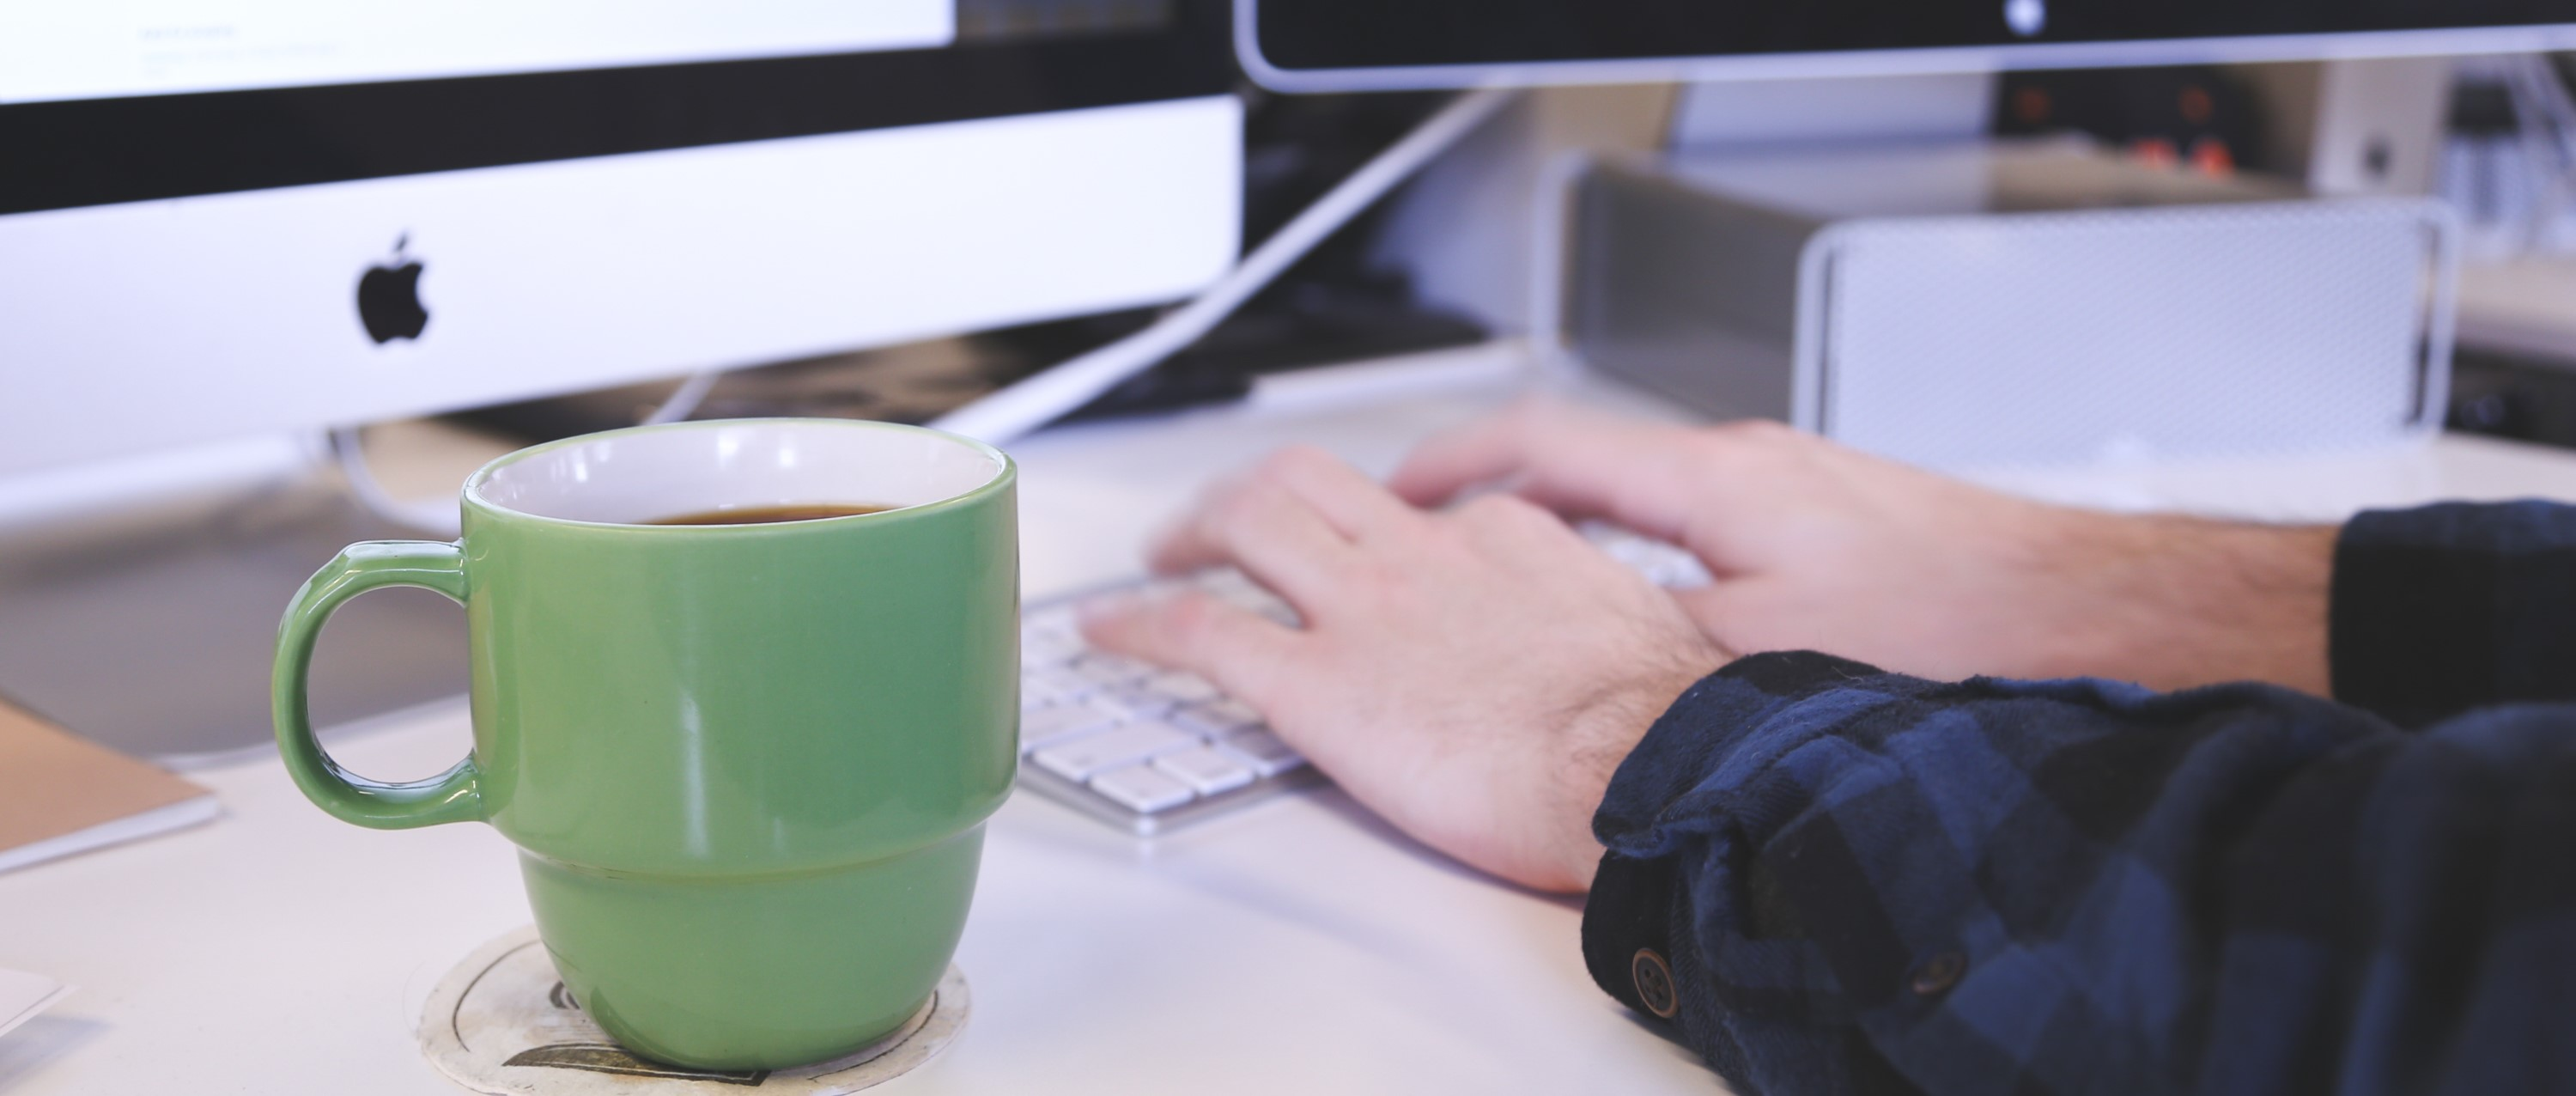 Speed Blogging Tips: Write 500 Valuable Words in Under 60 Minutes